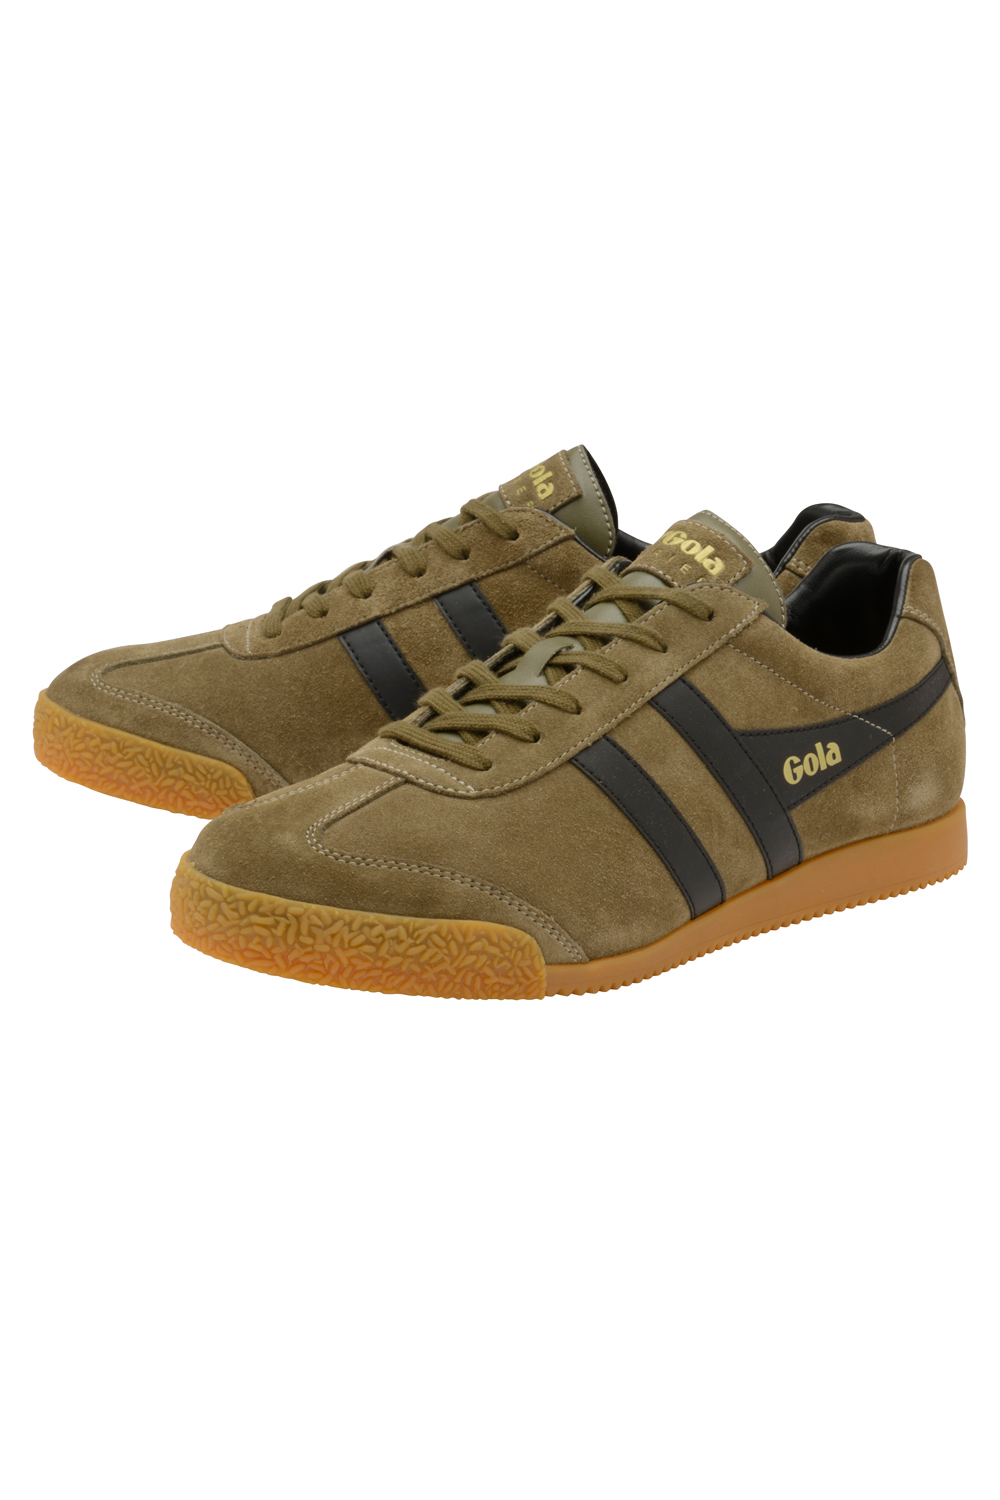 Gola-Harrier-Suede-Classic-Vintage-Lace-Up-Sneakers-Mens-Trainers-Low-Top-Shoes thumbnail 9